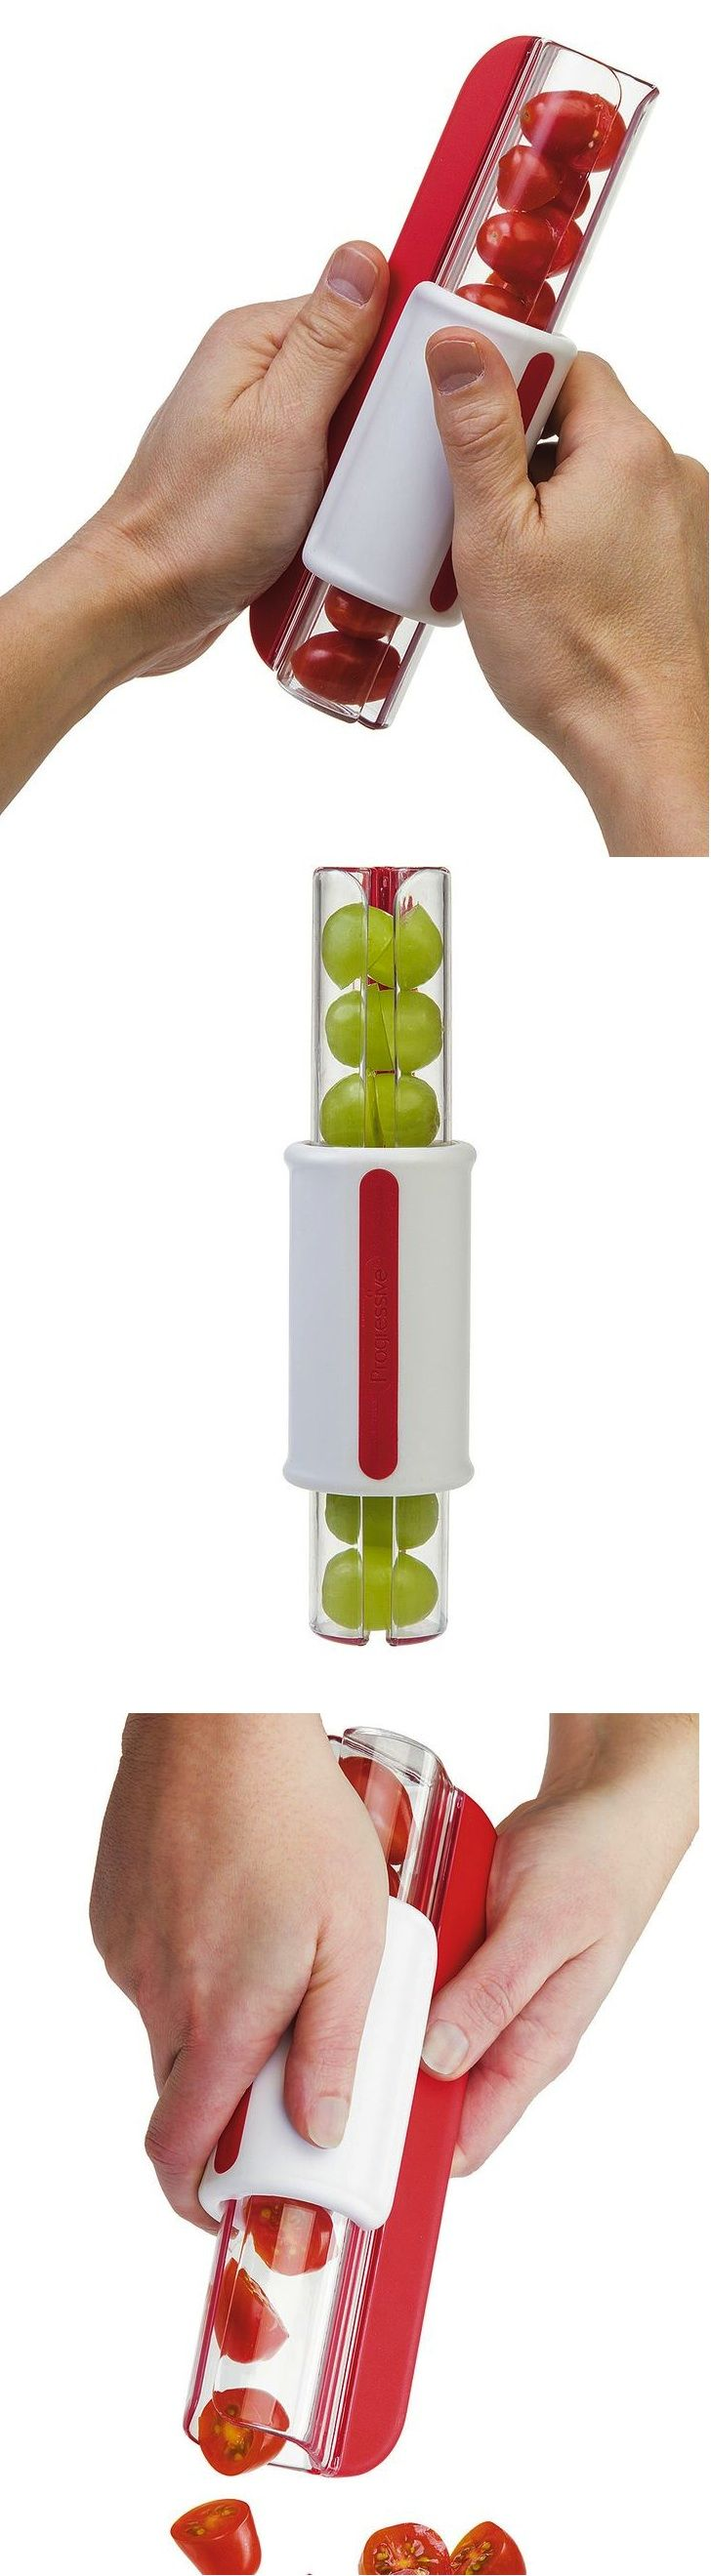 Progressive Zip Slicer: Slice cherry tomatoes, grapes and more with a quick zip! Ideal for snacks, salads and pasta.: Salad, Products Gadgets, Gadgets Kitchen, Cherry Tomatoes, Kitchen Gadgets And Gizmos, Cool Ideas, Gadgets Products, Kitchen Tools